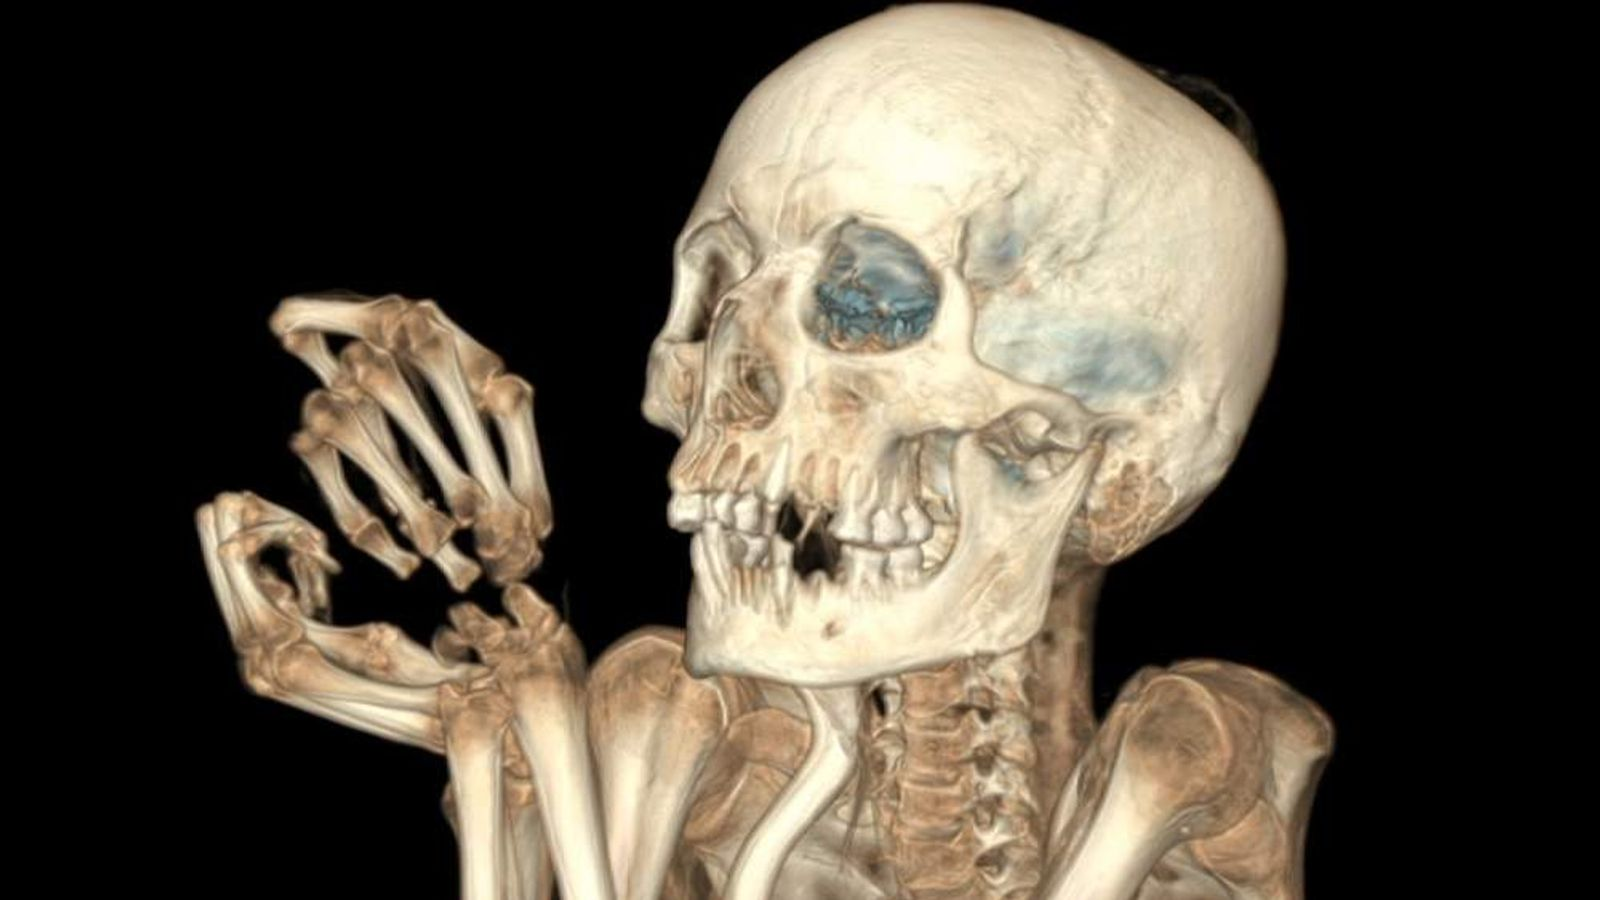 The British Museum has used CT scanners to shed new light on their mummy collection.